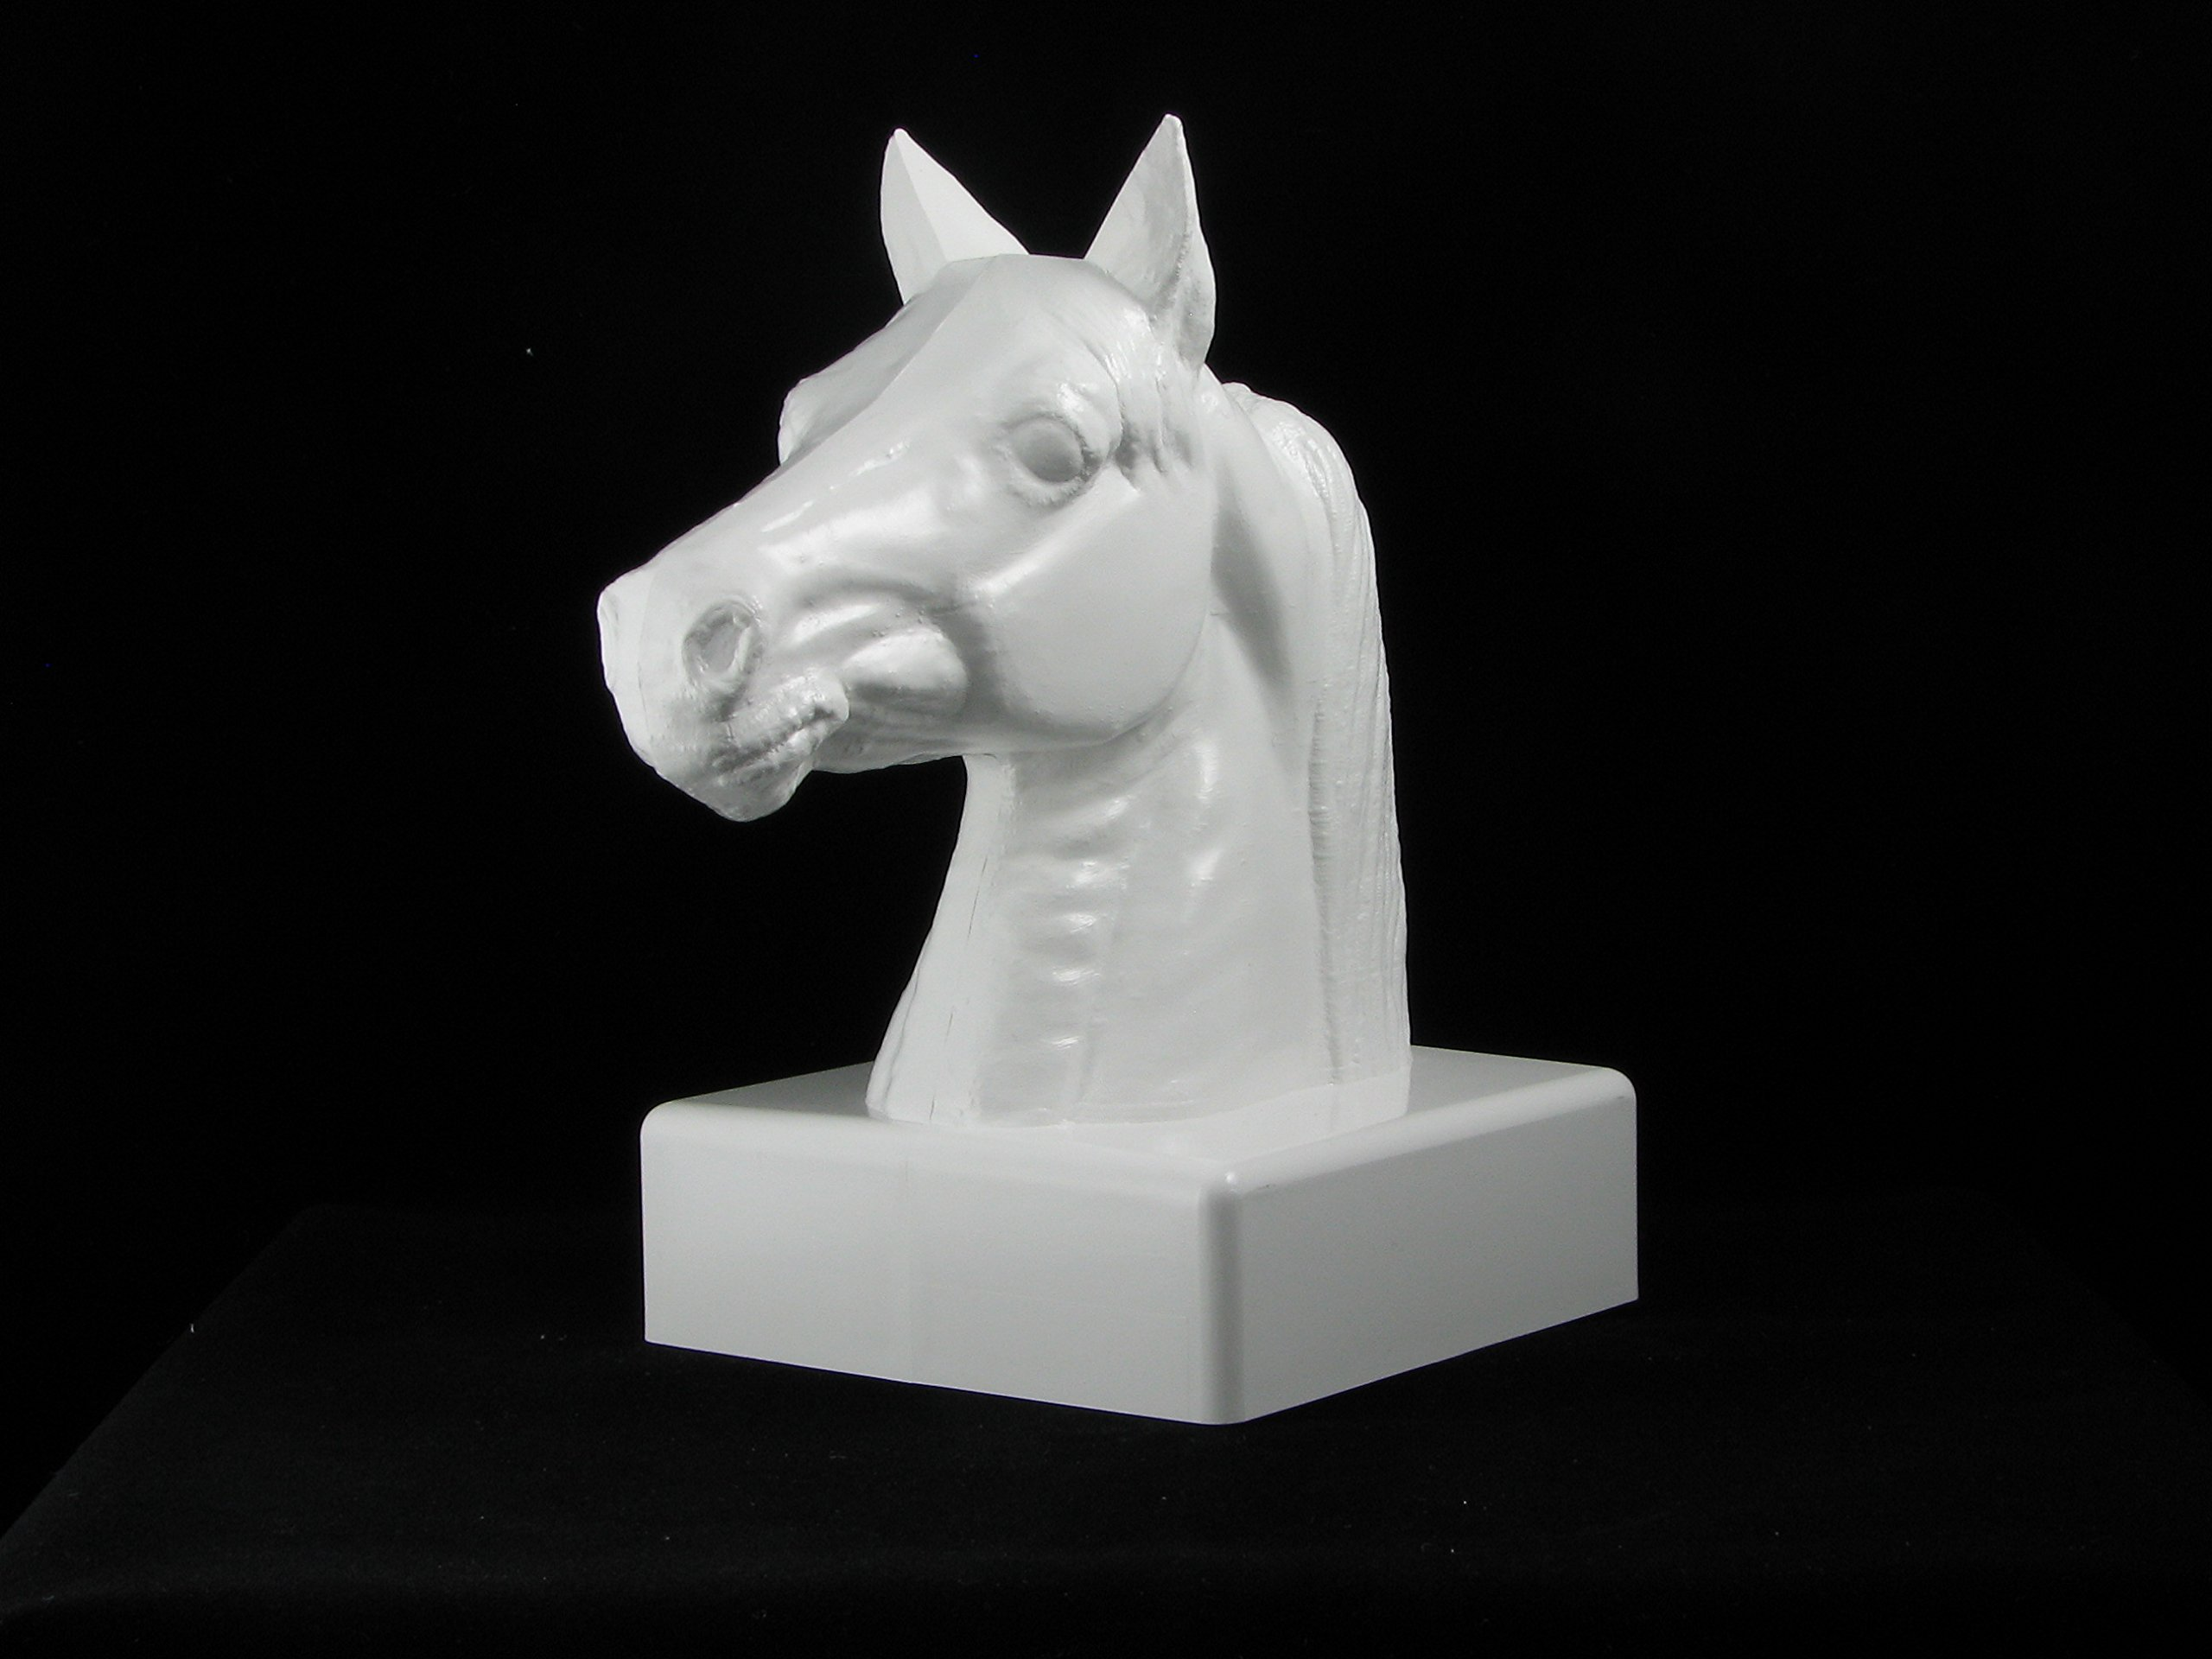 5''x 5'' Vinyl Post Cap - Stallion Real Horse Head Cap White